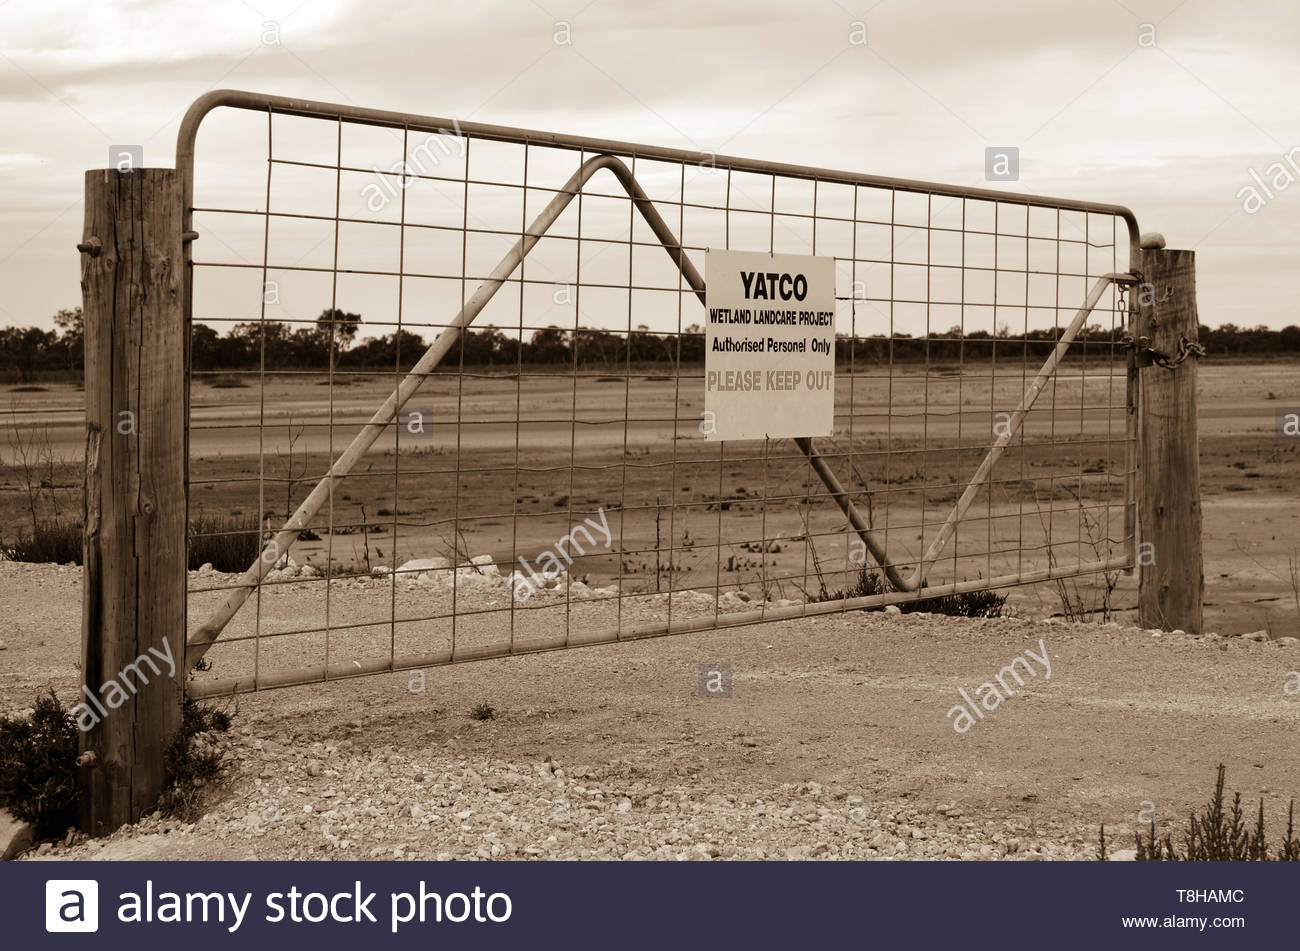 Yatco Wetlands 'keep out' gate with no fence. Moorook, South Australia. Dry wetlands. Sepia photo. - Stock Image